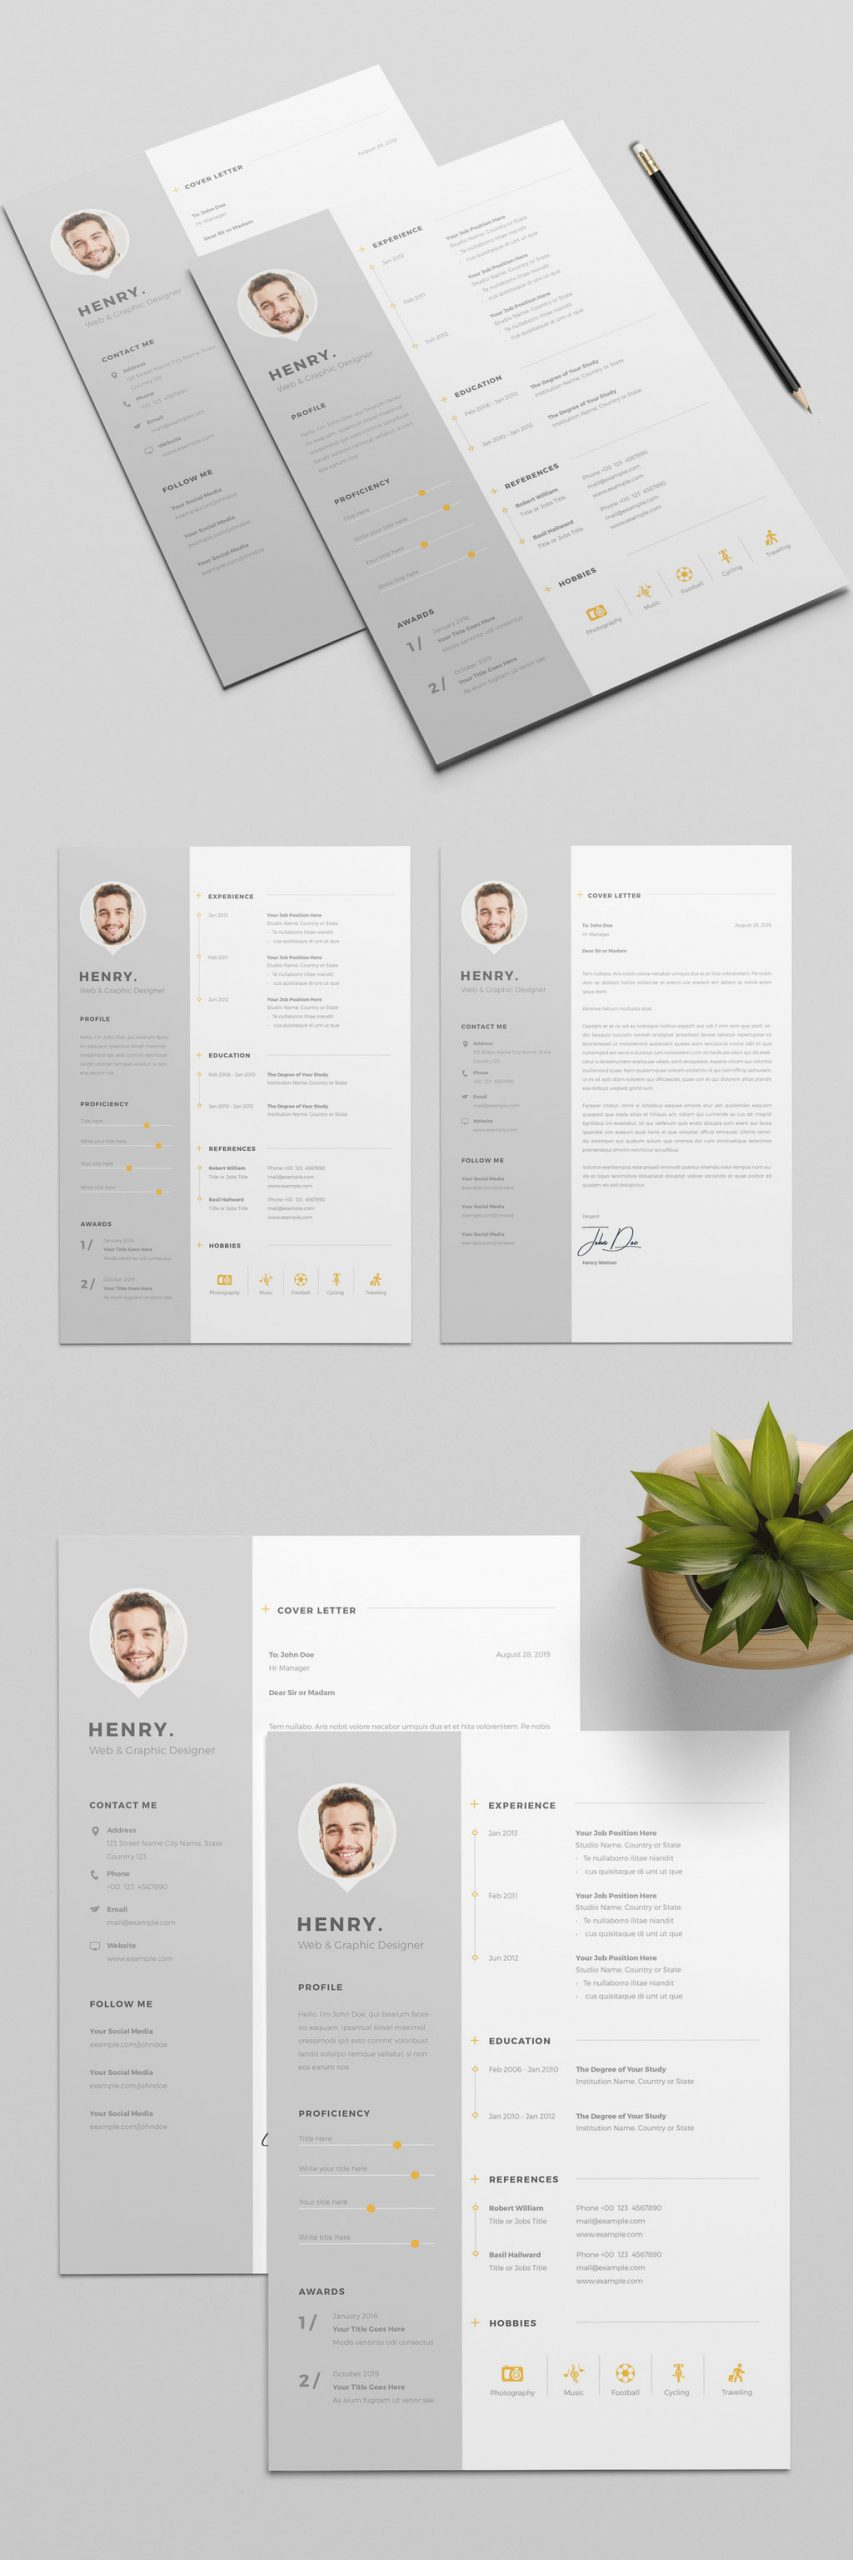 Resume and CV Template with Gray Sidebar Element and Orange Accents